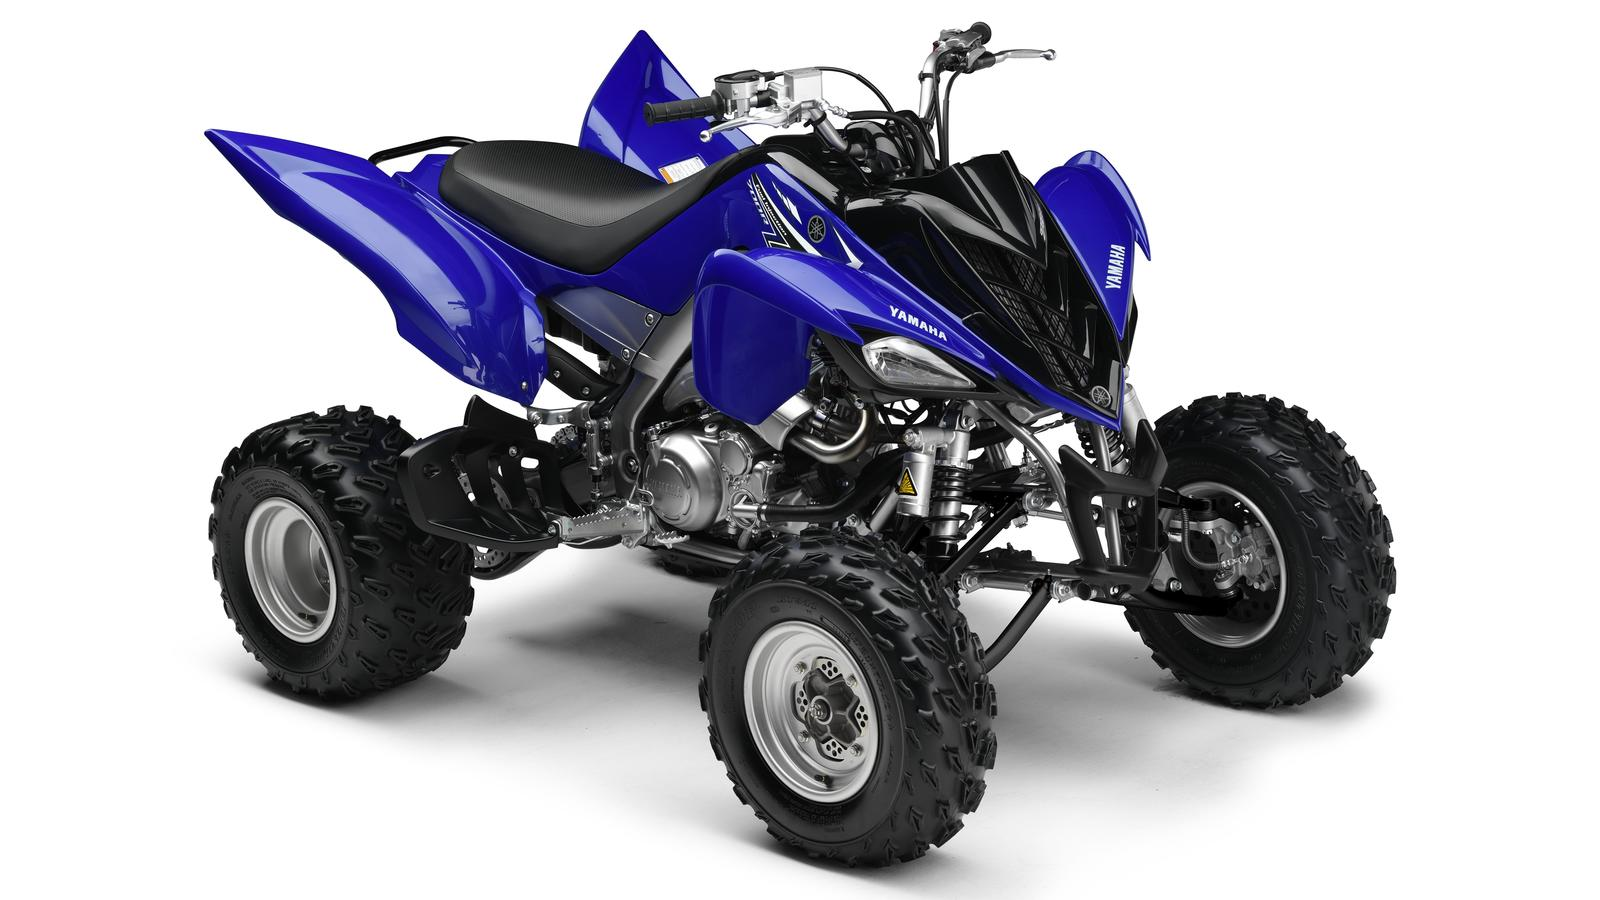 YAMAHA YFM 700 R Raptor  2011 photo 9